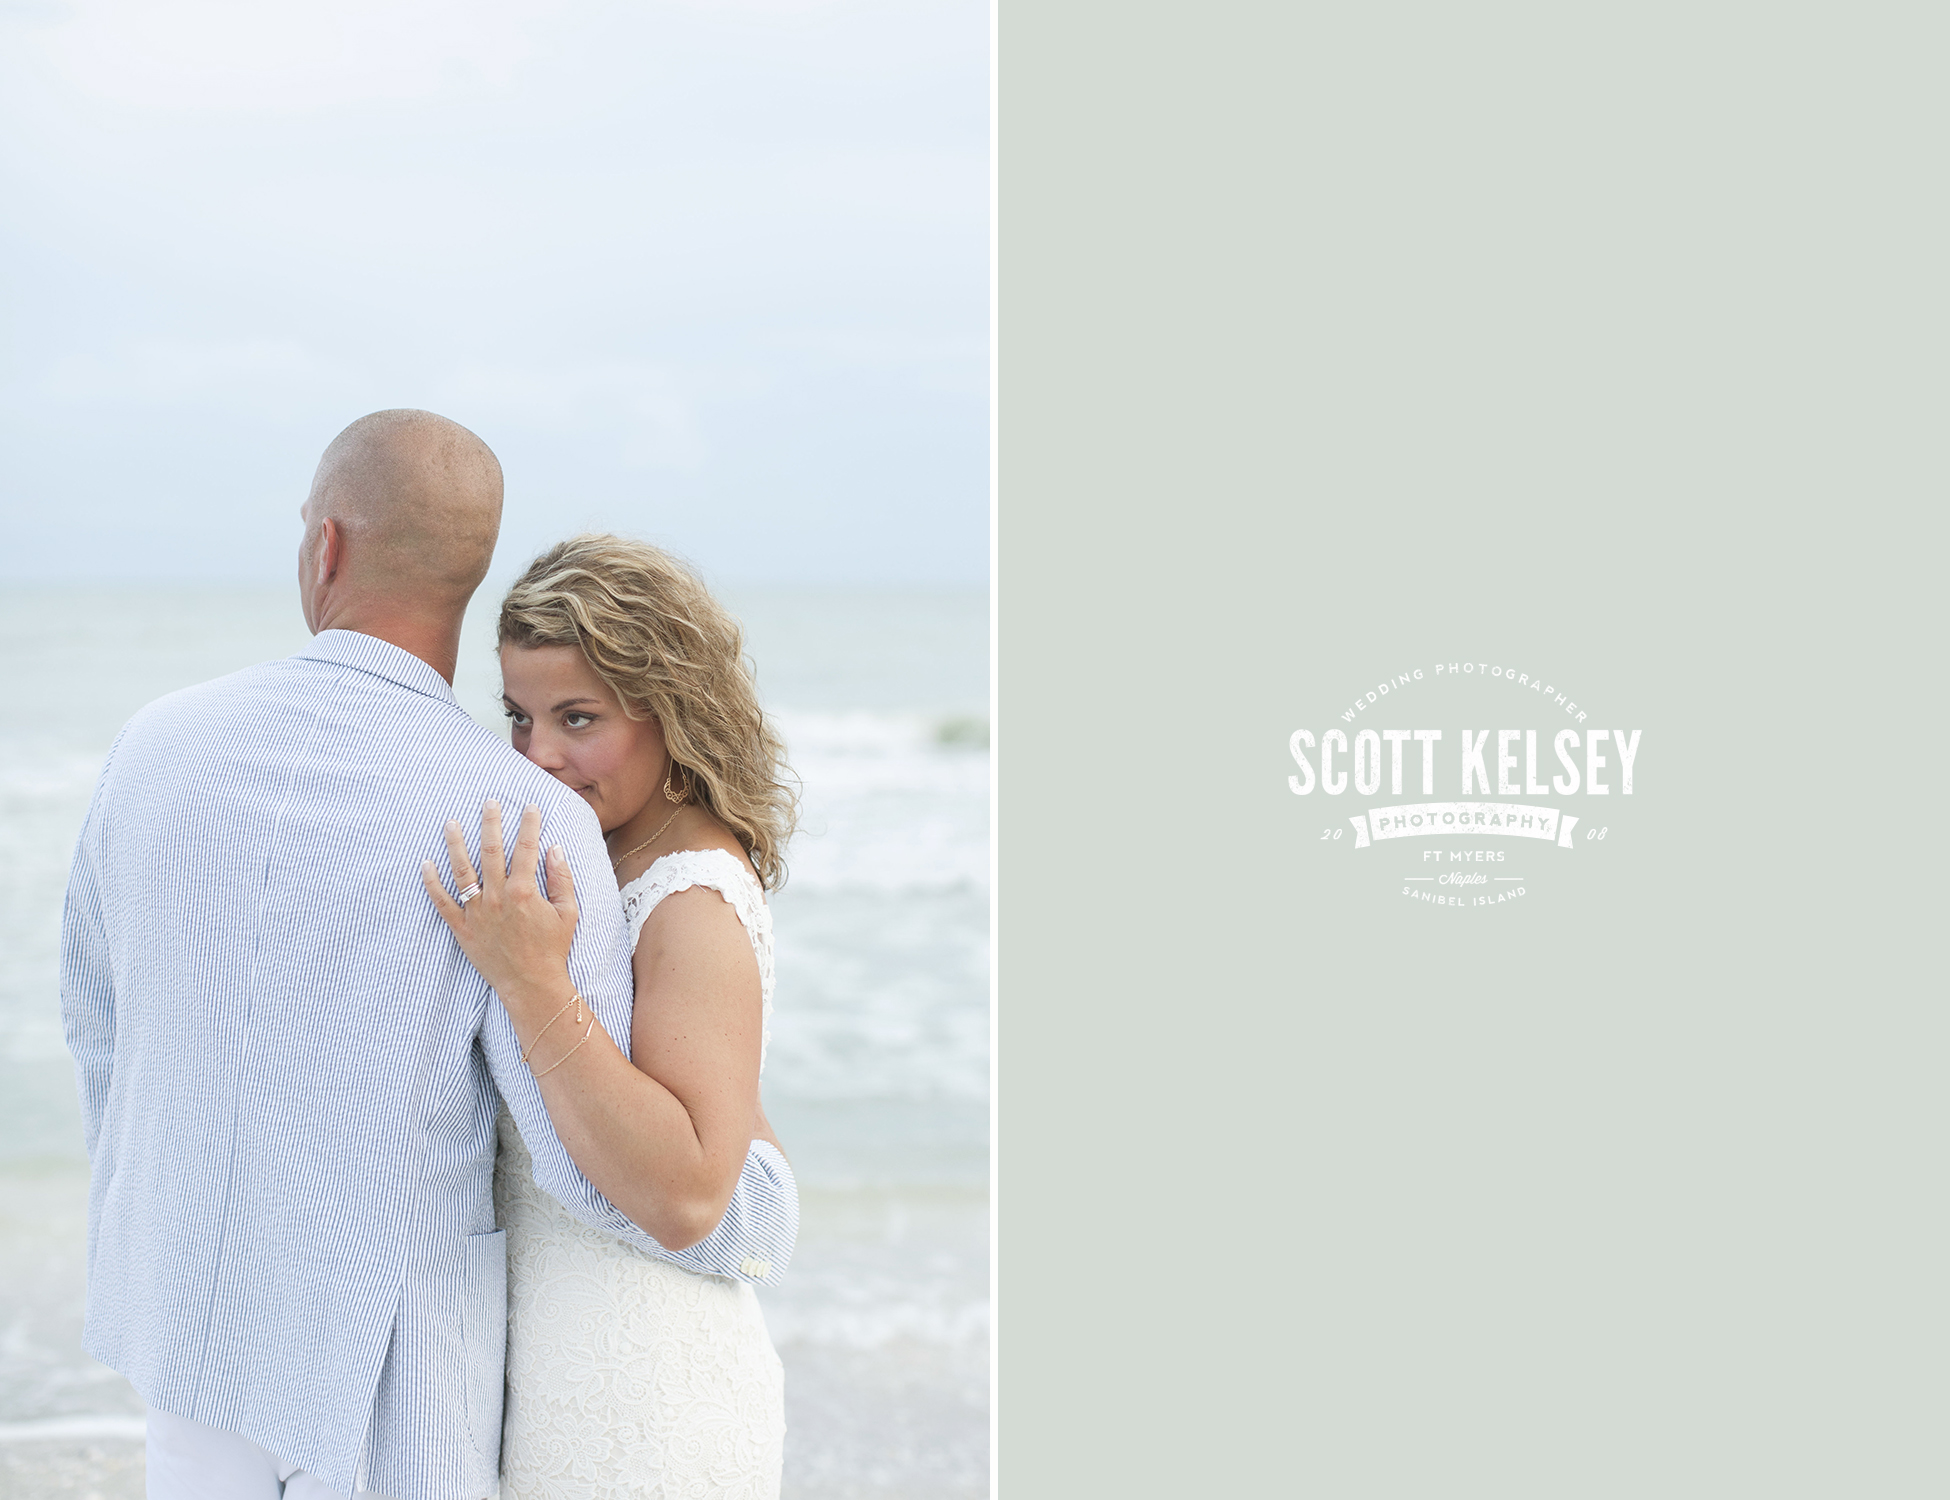 boho-wedding-watersideinn-sanibel-scott-kelsey-020